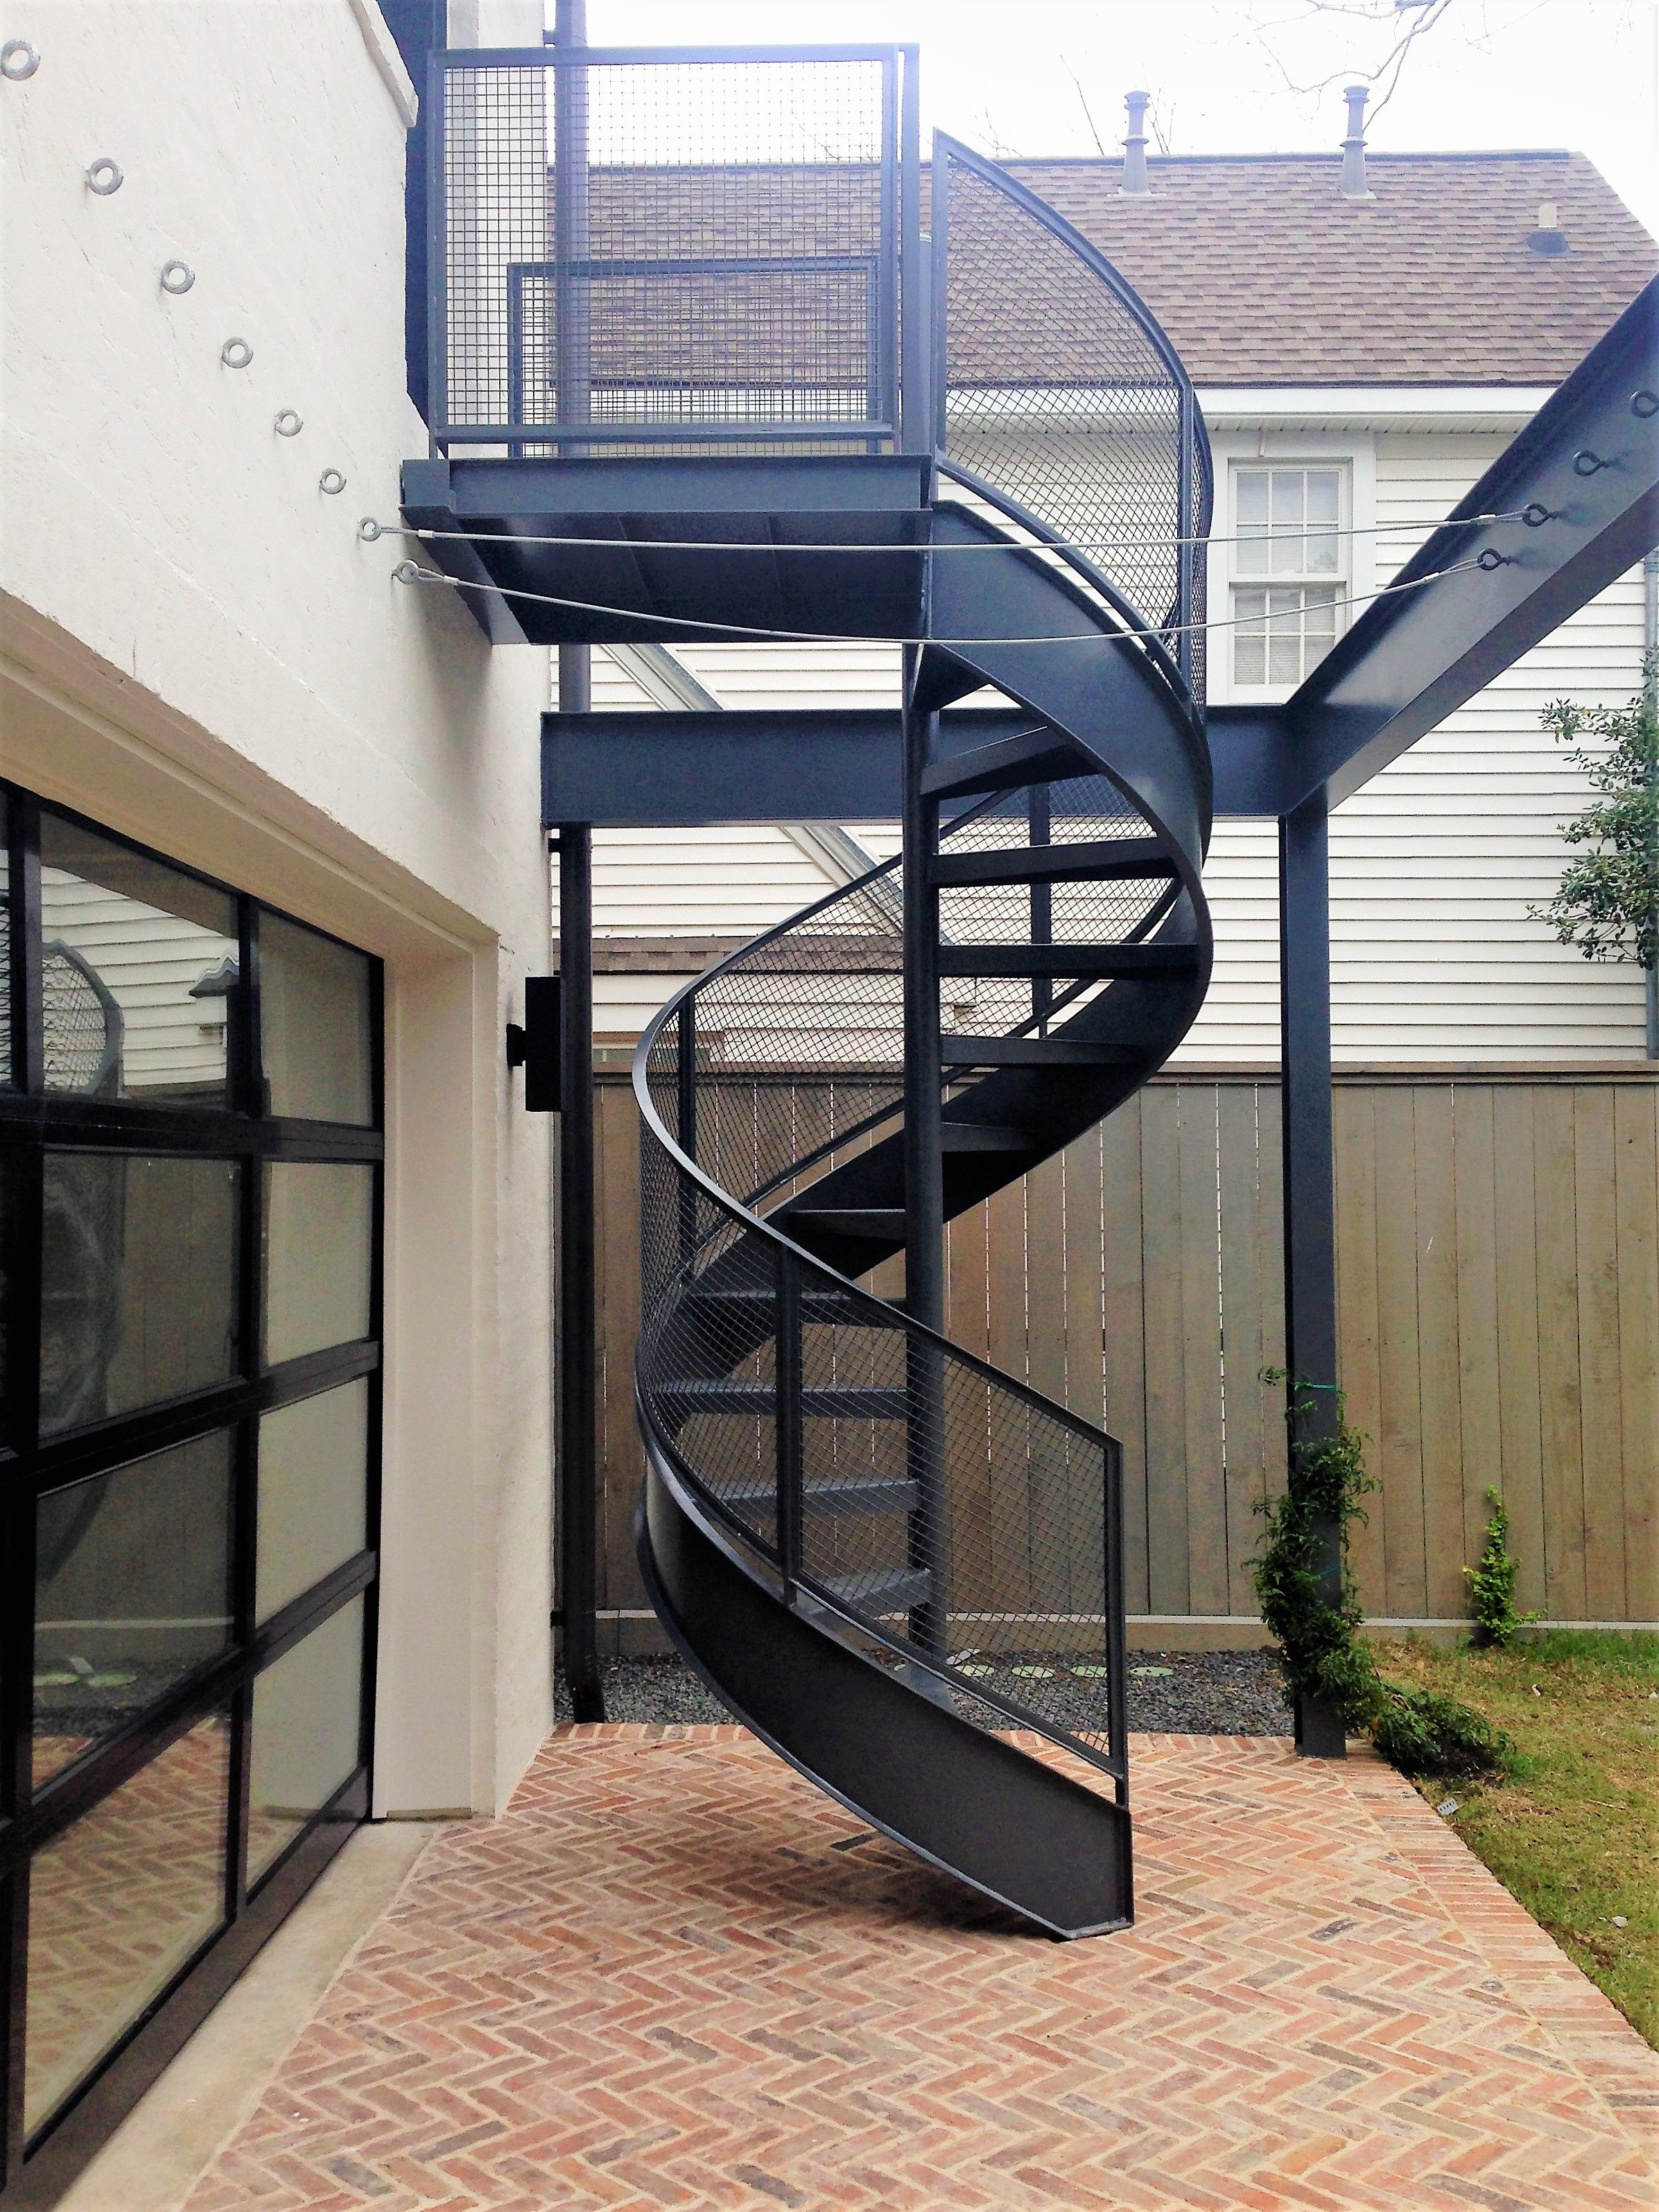 This Is An All Steel Code Compliant Spiral Stair Has A Flat Bar | Circular Stairs For Sale | Shop | Glass | Wooden | Modern | Wrought Iron